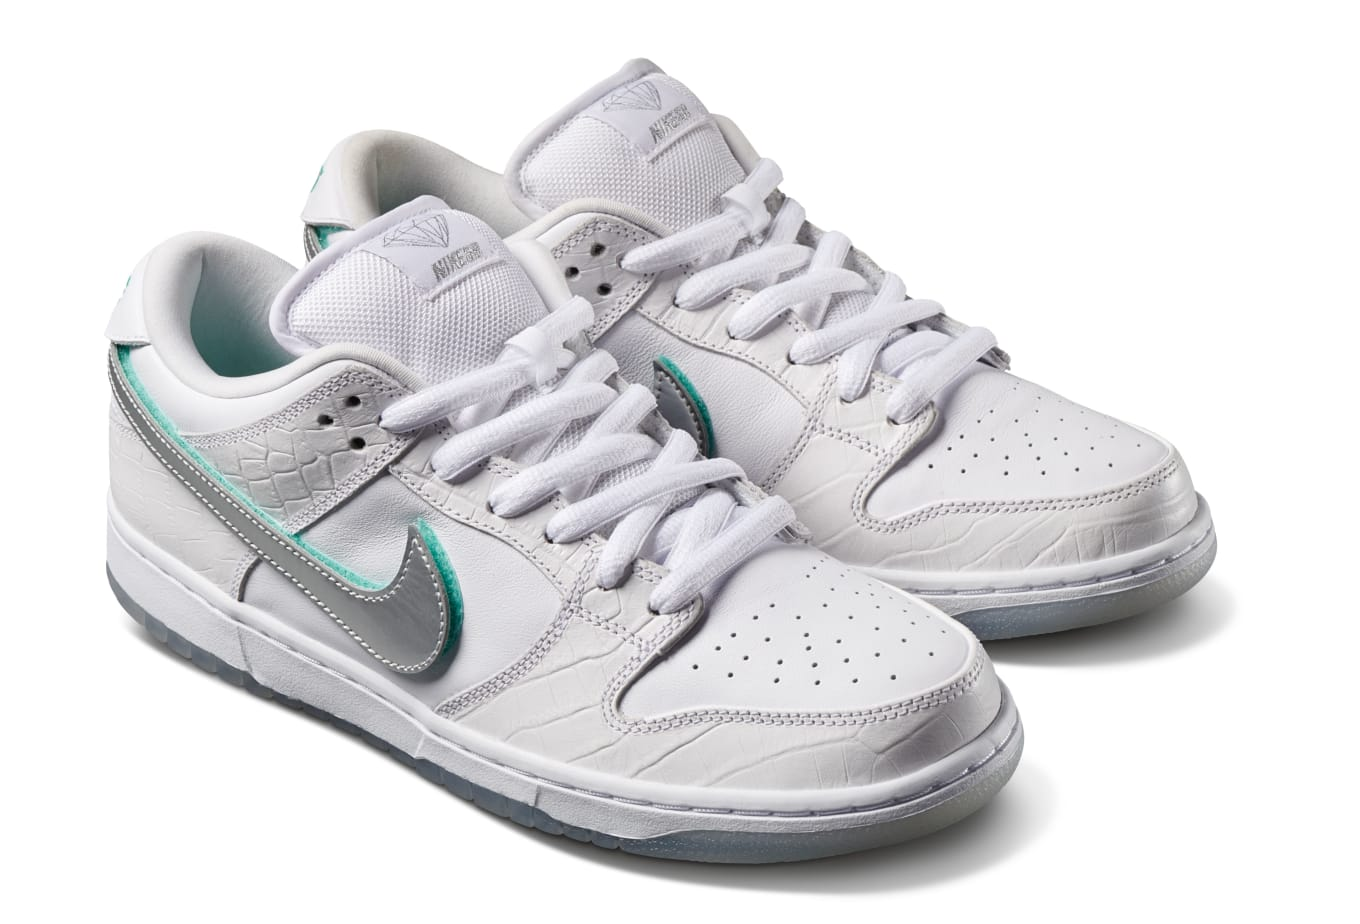 promo code 07901 8ff33 Reveals SB Dunk Details. White colorway will drop exclusively at skate shops .